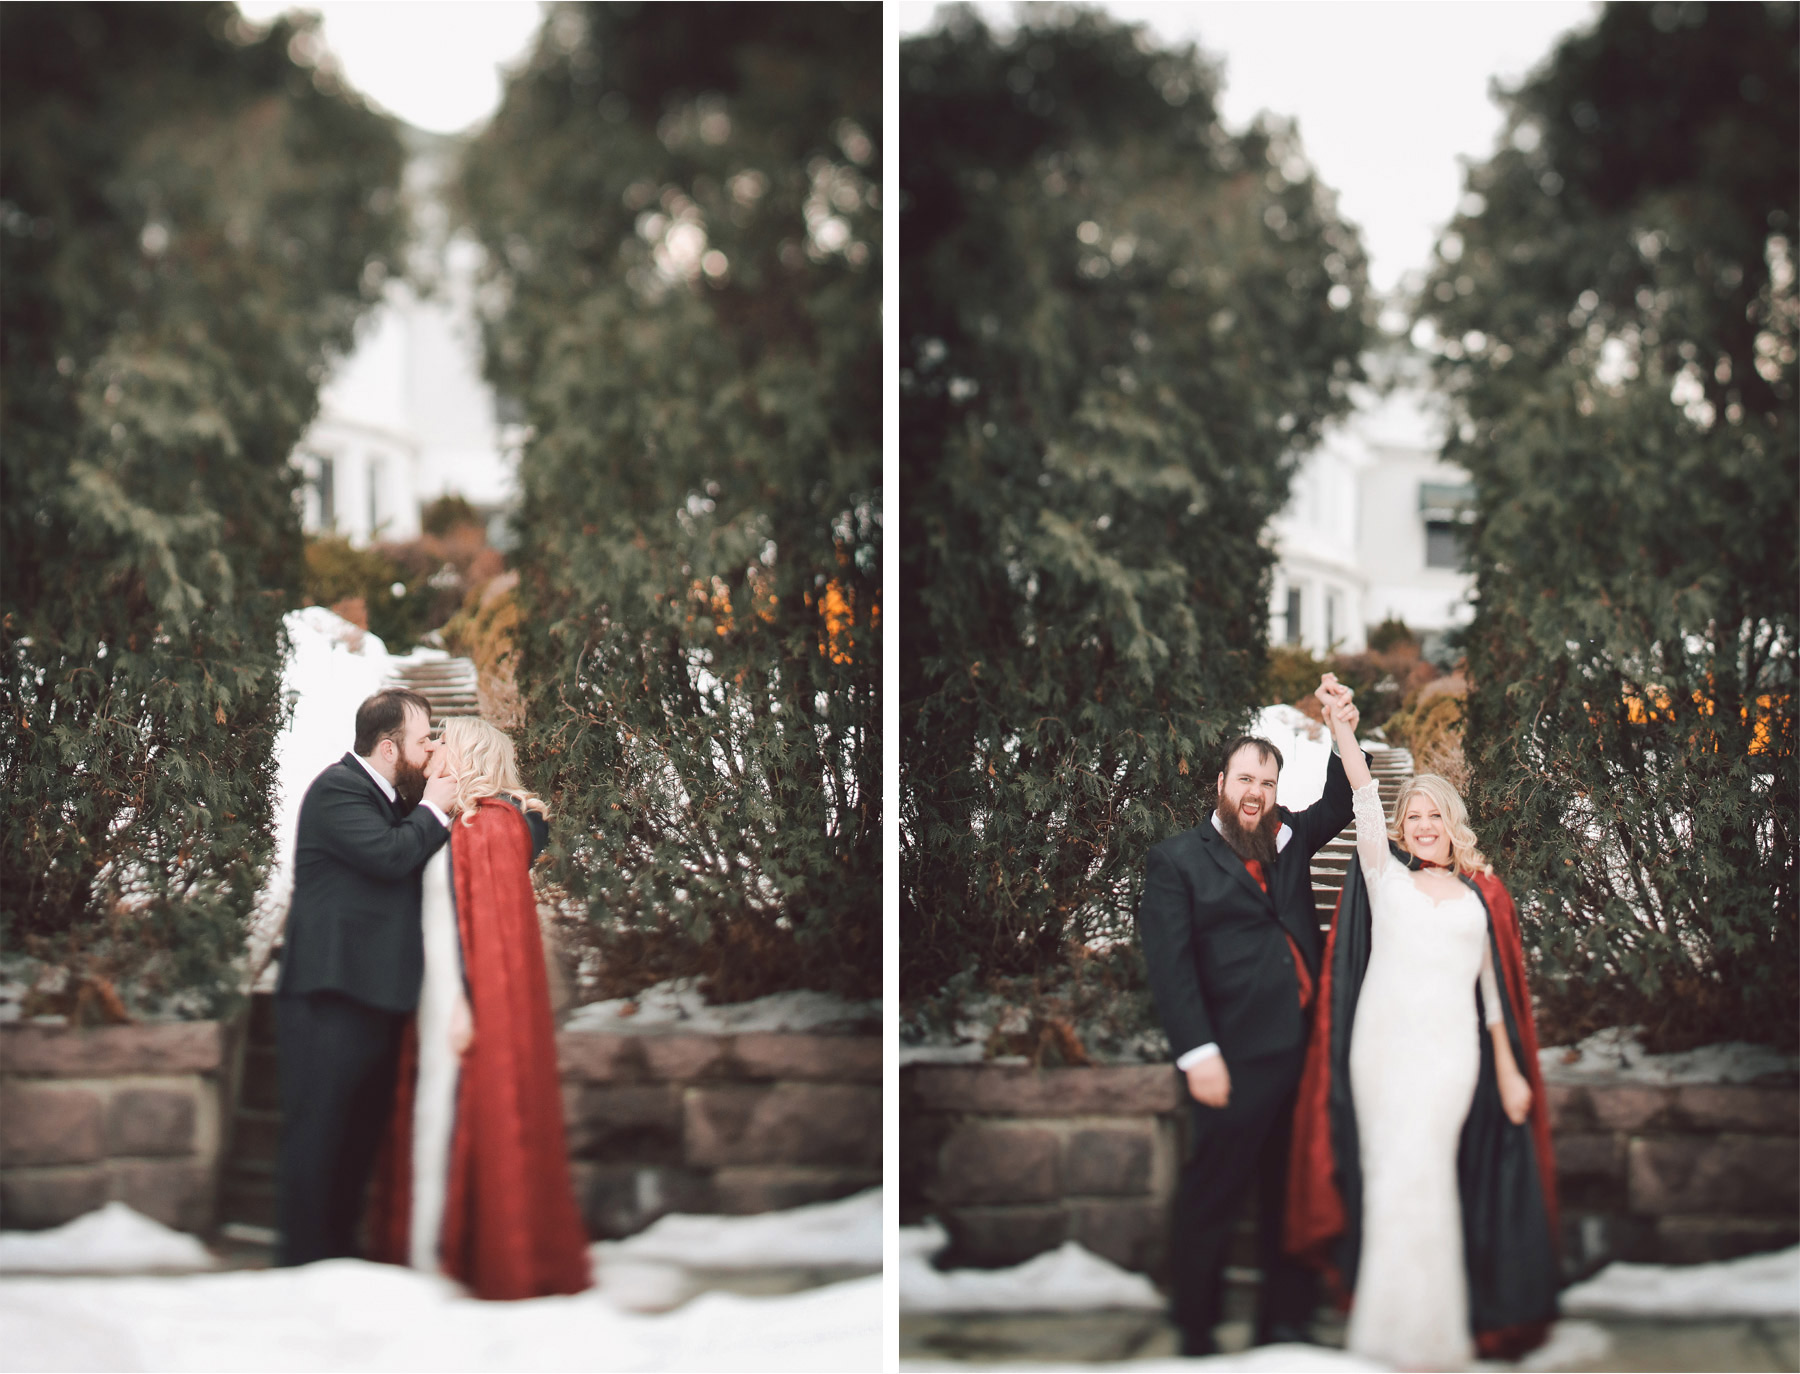 13-Minneapolis-Wedding-Photography-by-Vick-Photography-Winter-Wedding-Shayla-and-Kyle.jpg